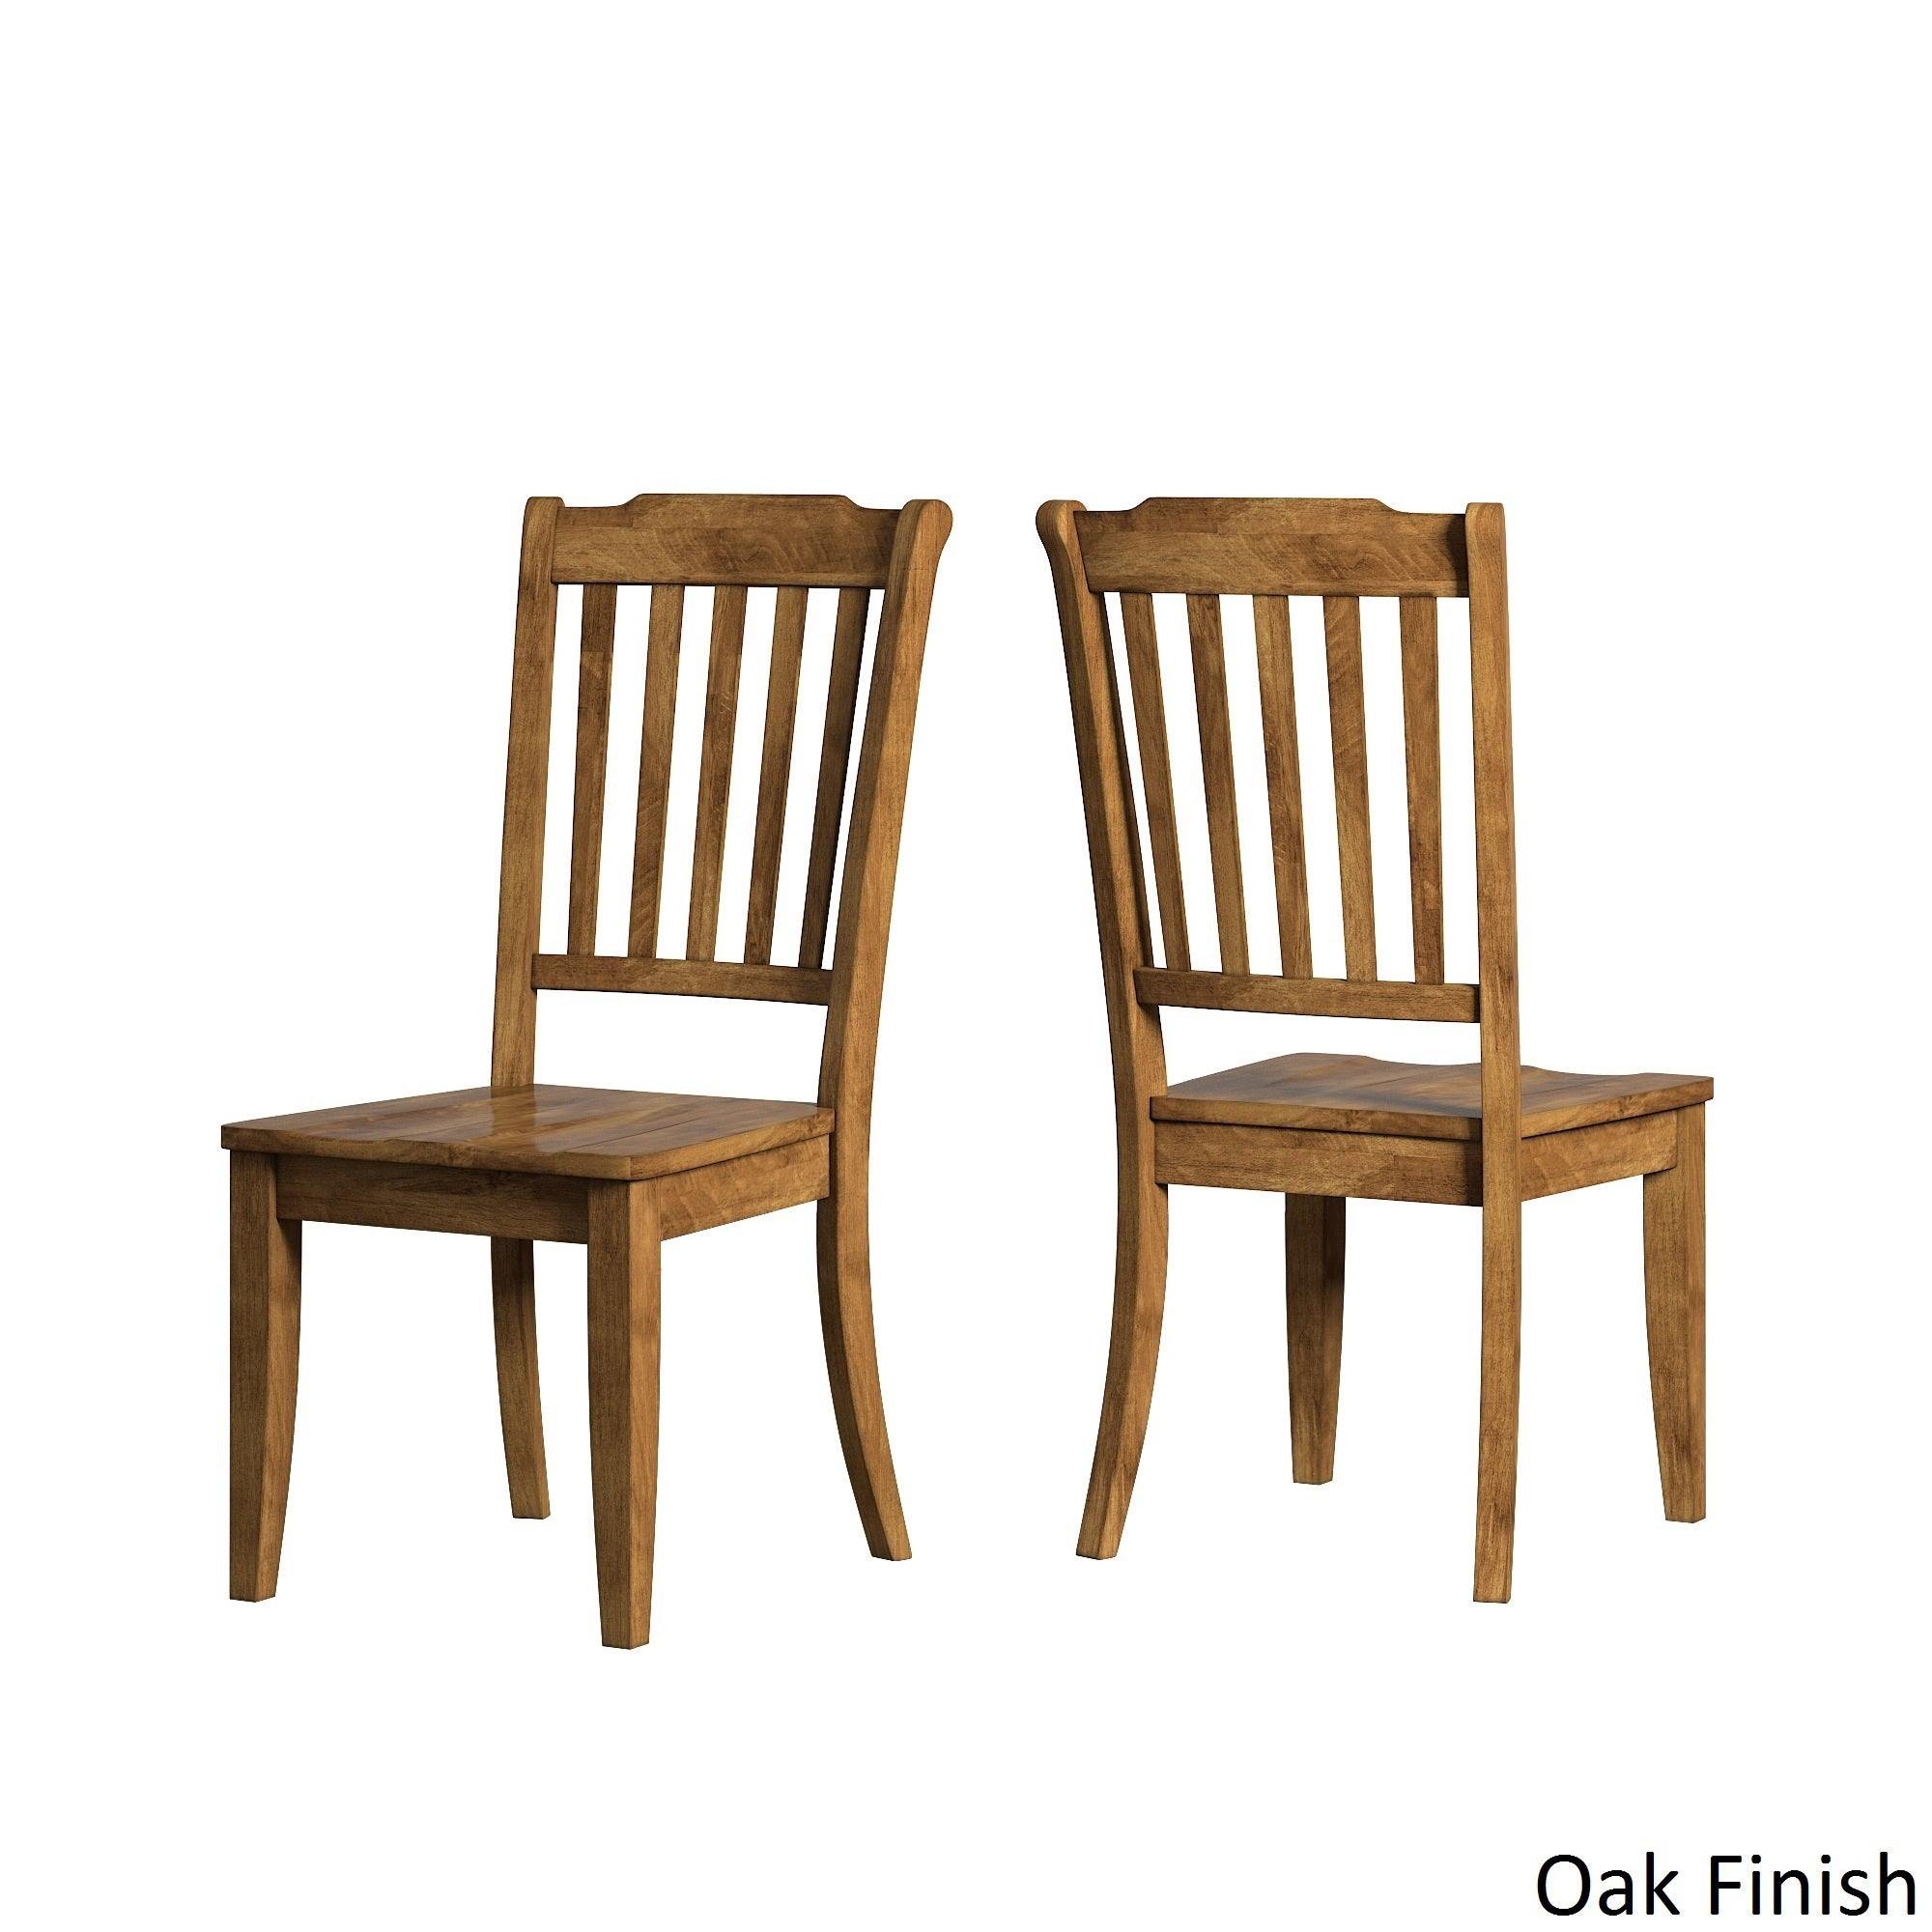 slat back chairs. Elena Antique White Extendable Rectangular Dining Set With Slat Back Chairs By INSPIRE Q Classic - Free Shipping Today Overstock 26579846